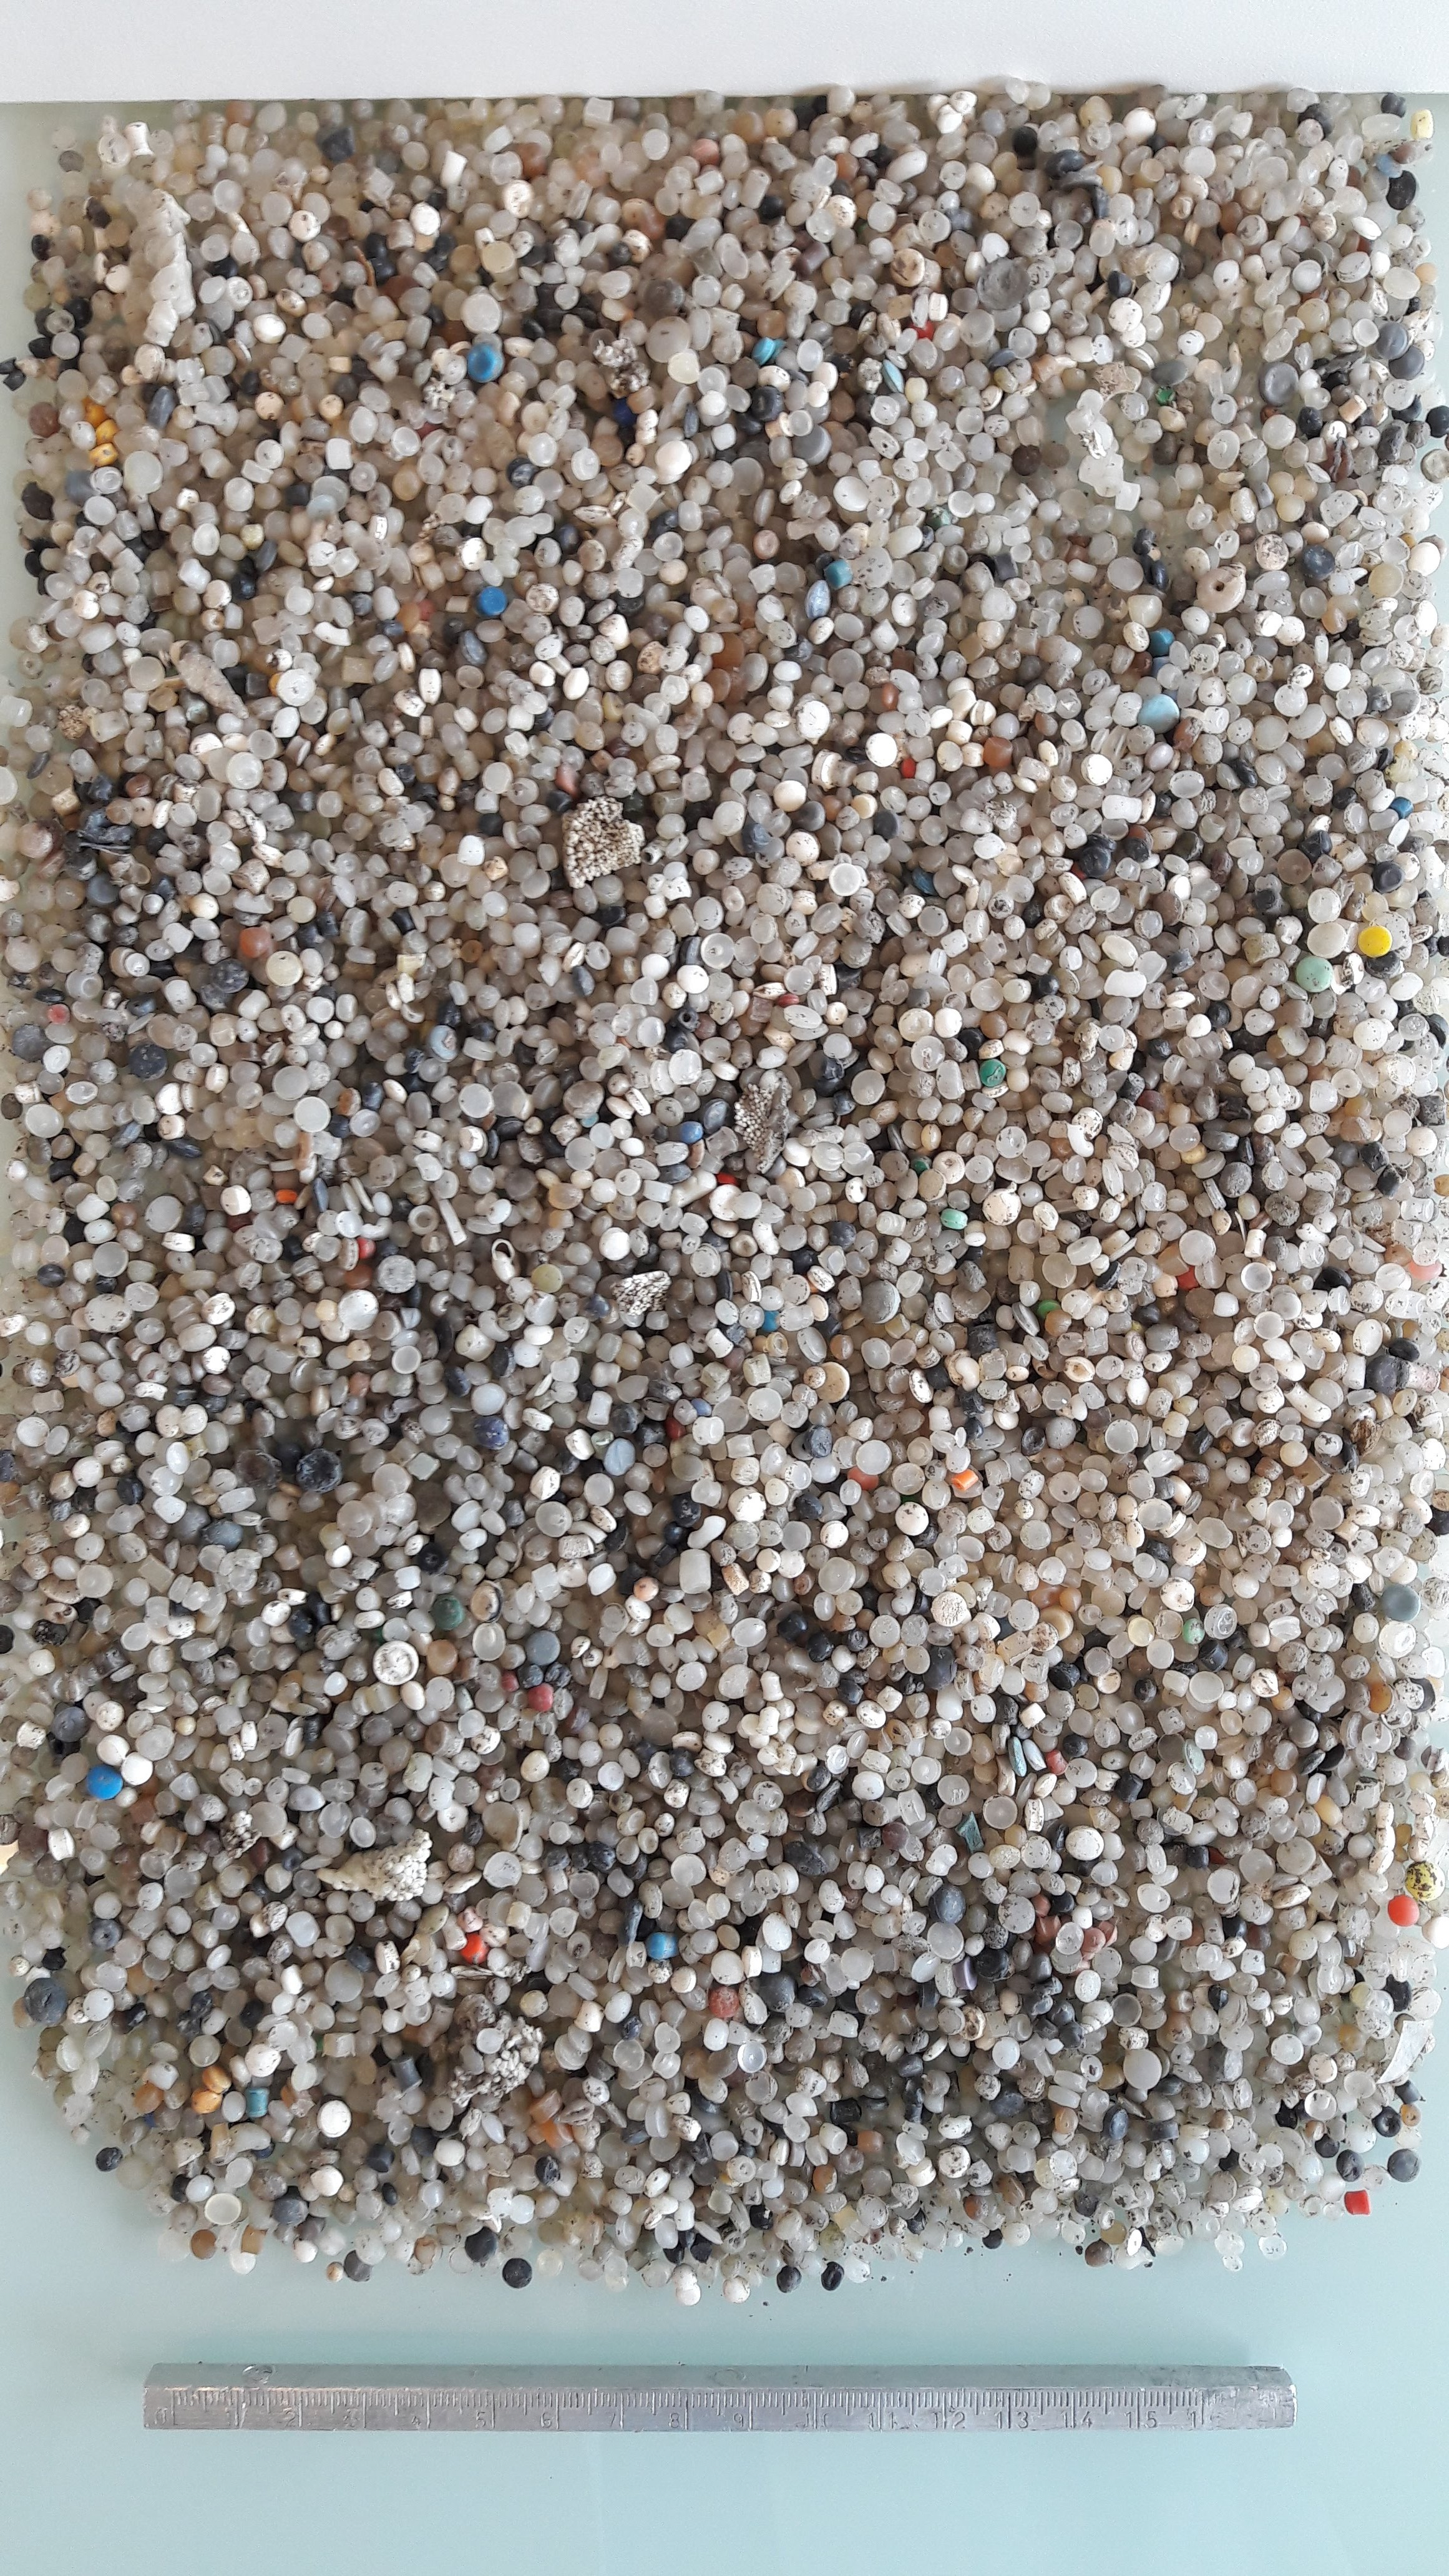 Plastic pellet pollution -